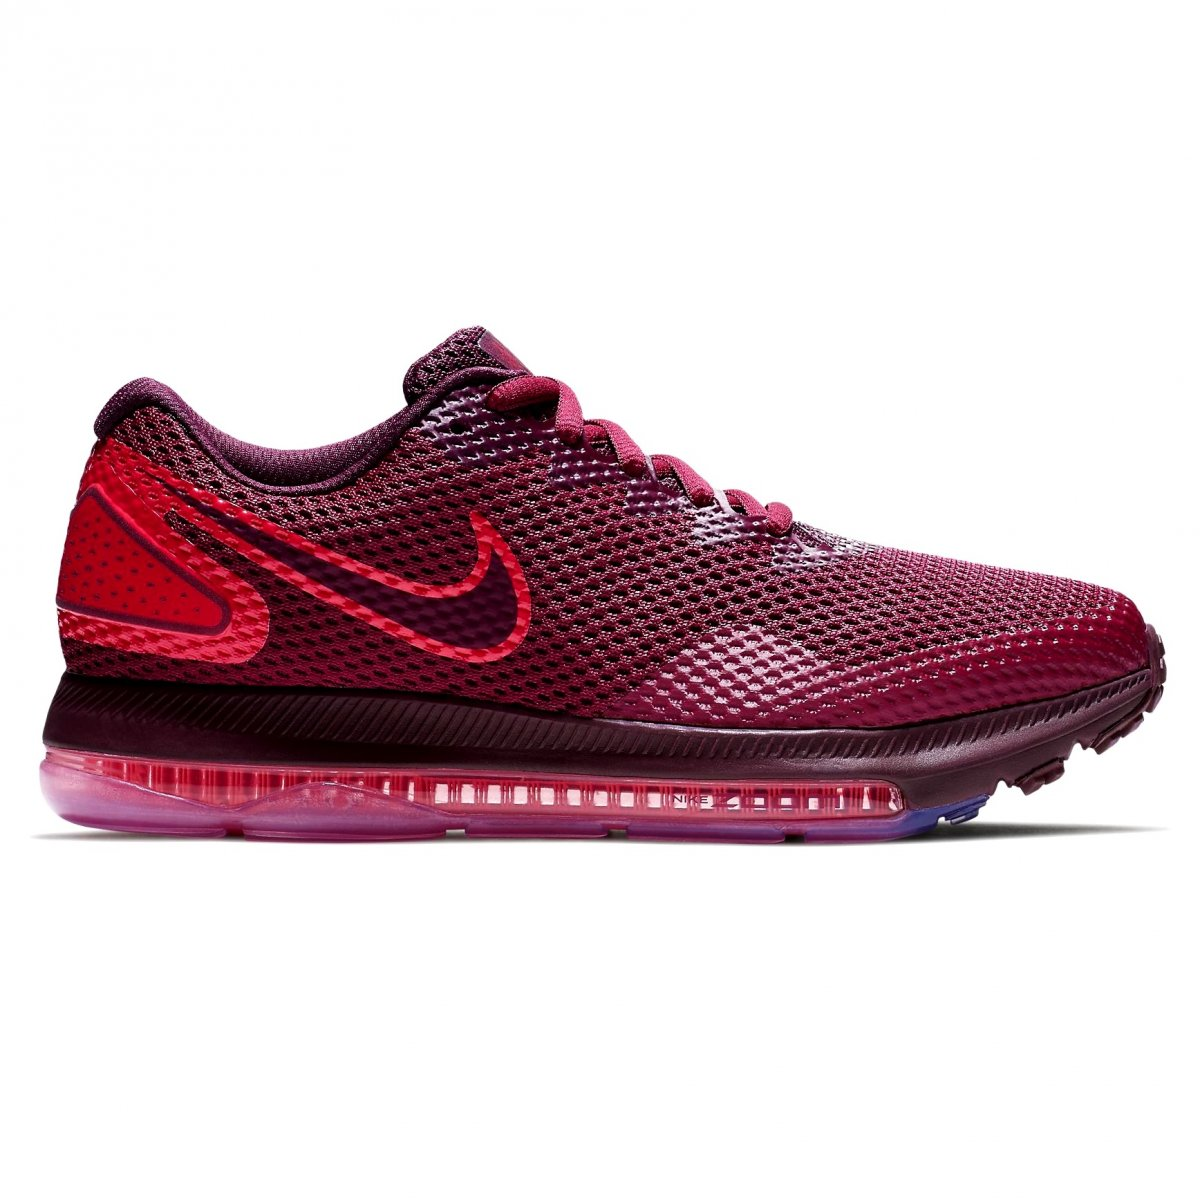 a07505ae96 Tênis Feminino Nike Zoom All Out Low 2 AJ0036-600 - Roxo Rosa ...